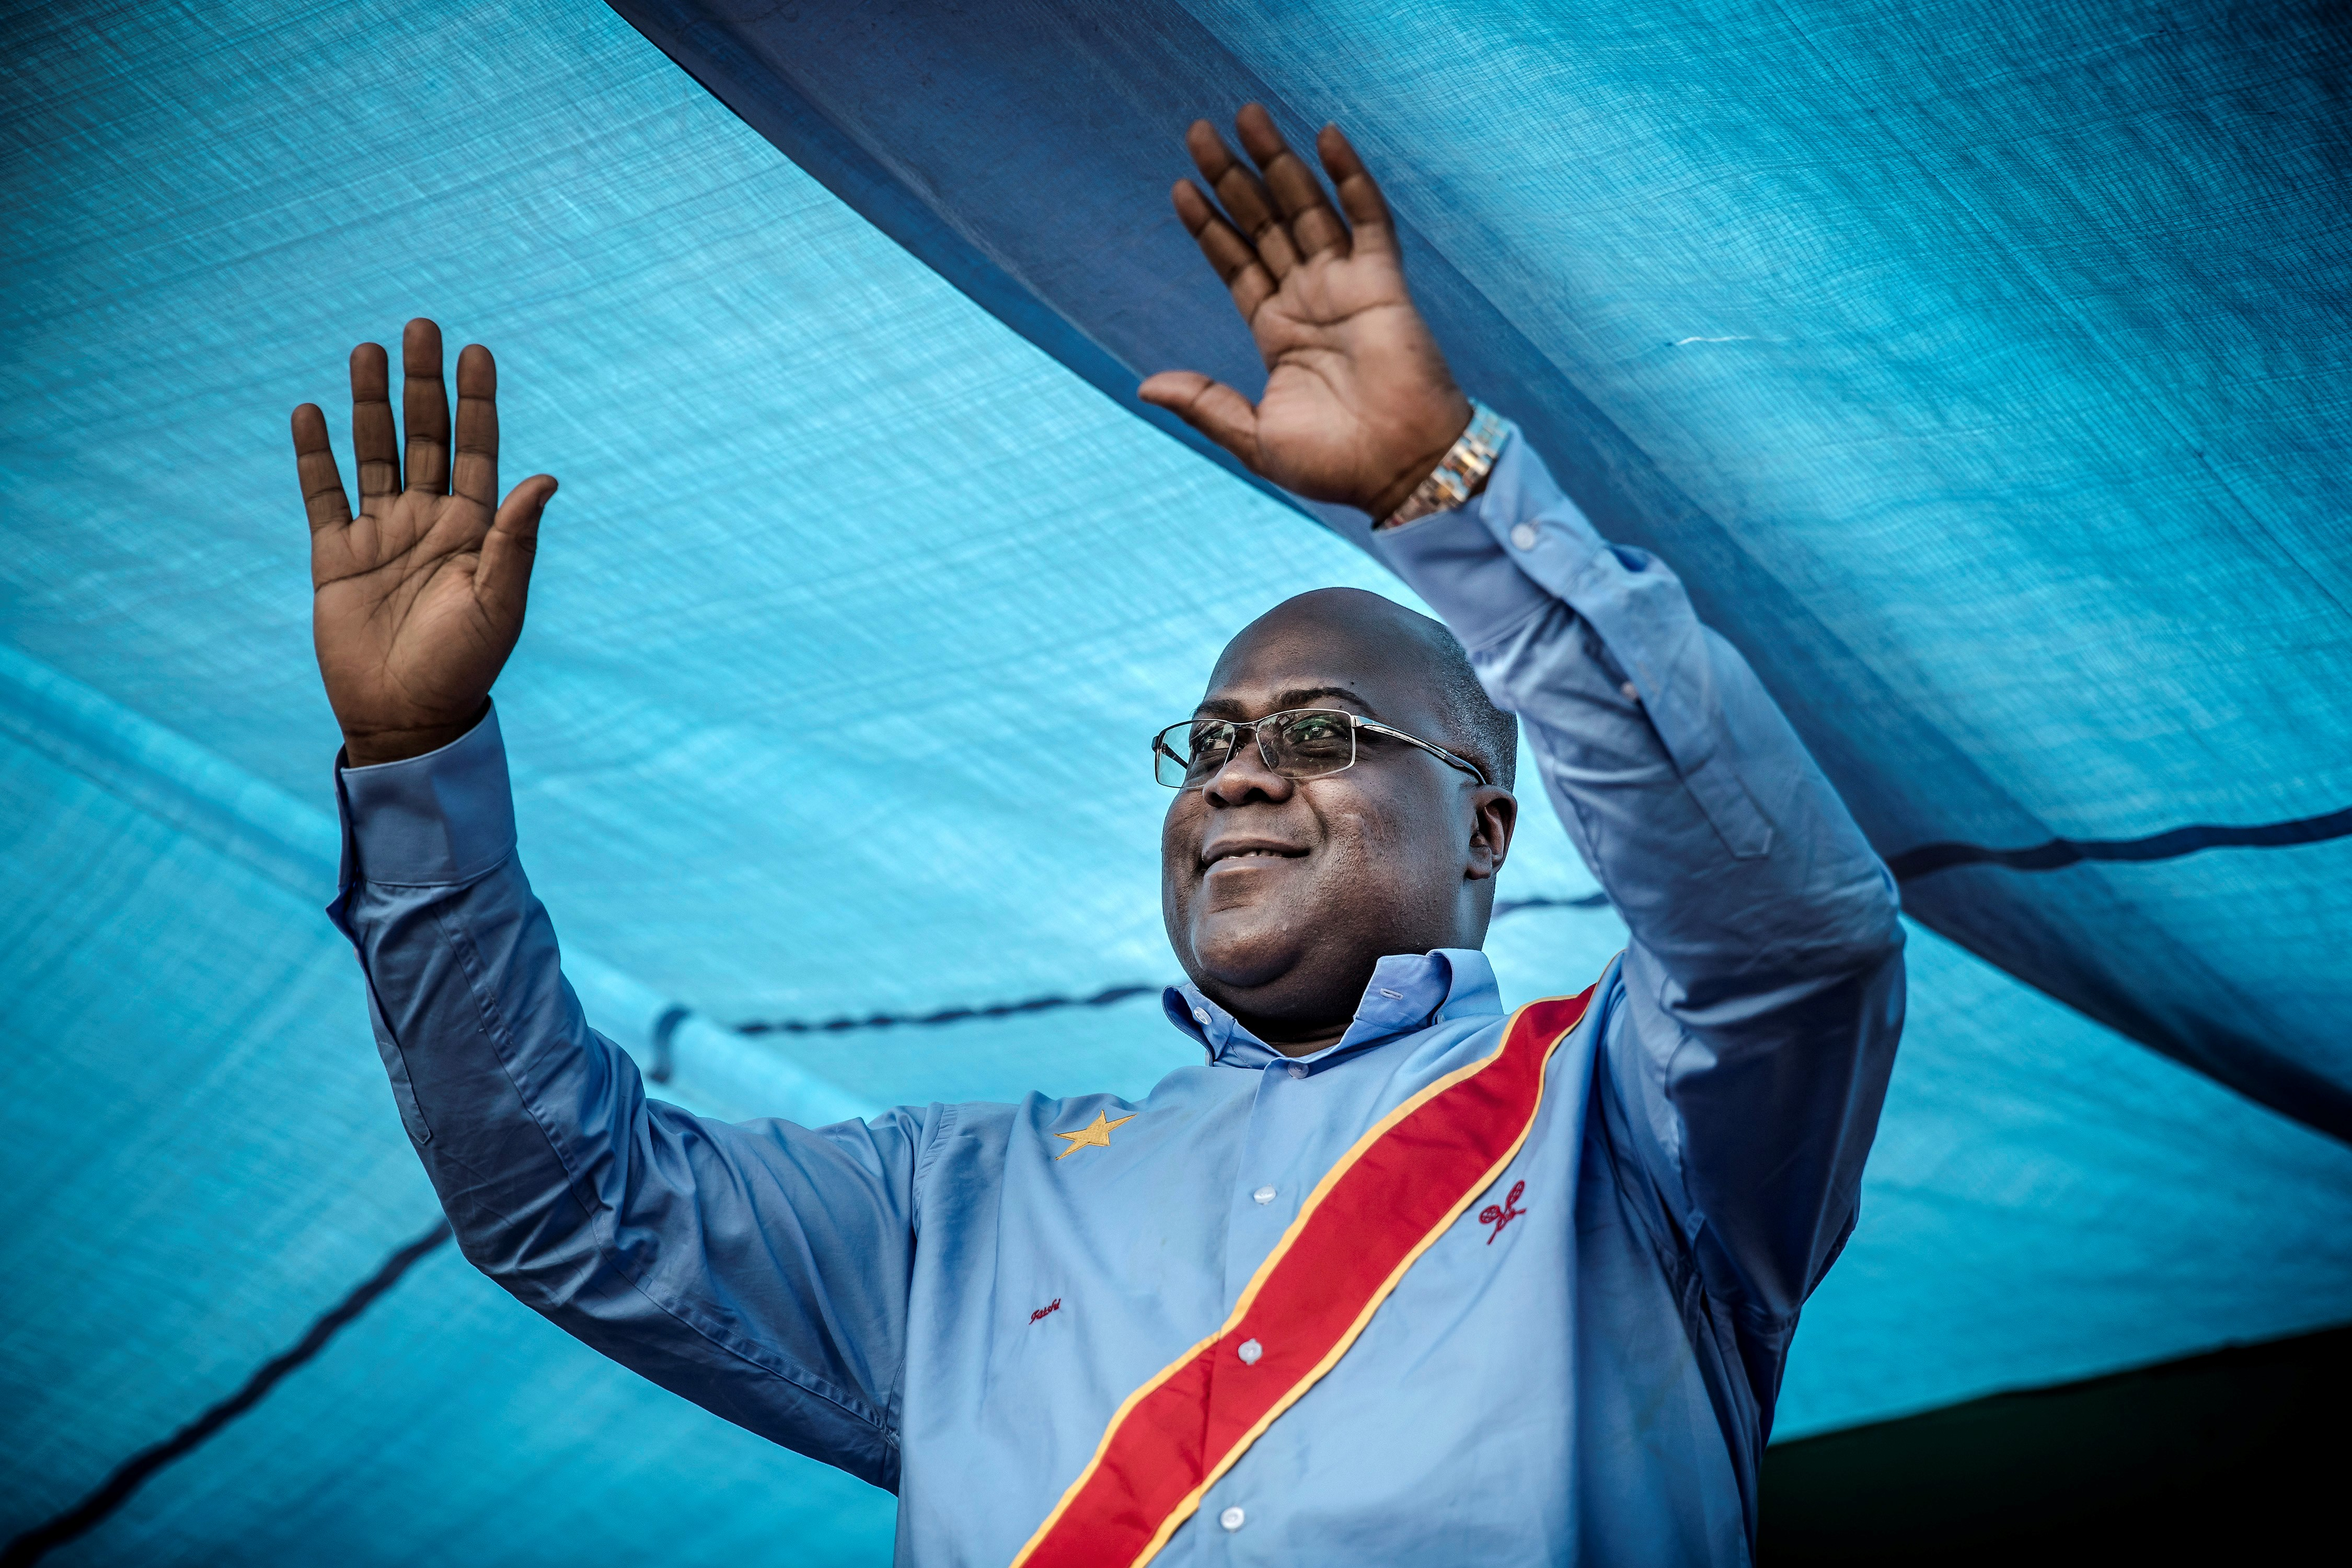 File: Opposition leader Felix Tshisekedi takes over from Joseph Kabila who is stepping aside after 18 years at the helm of sub-Saharan Africa's biggest country.